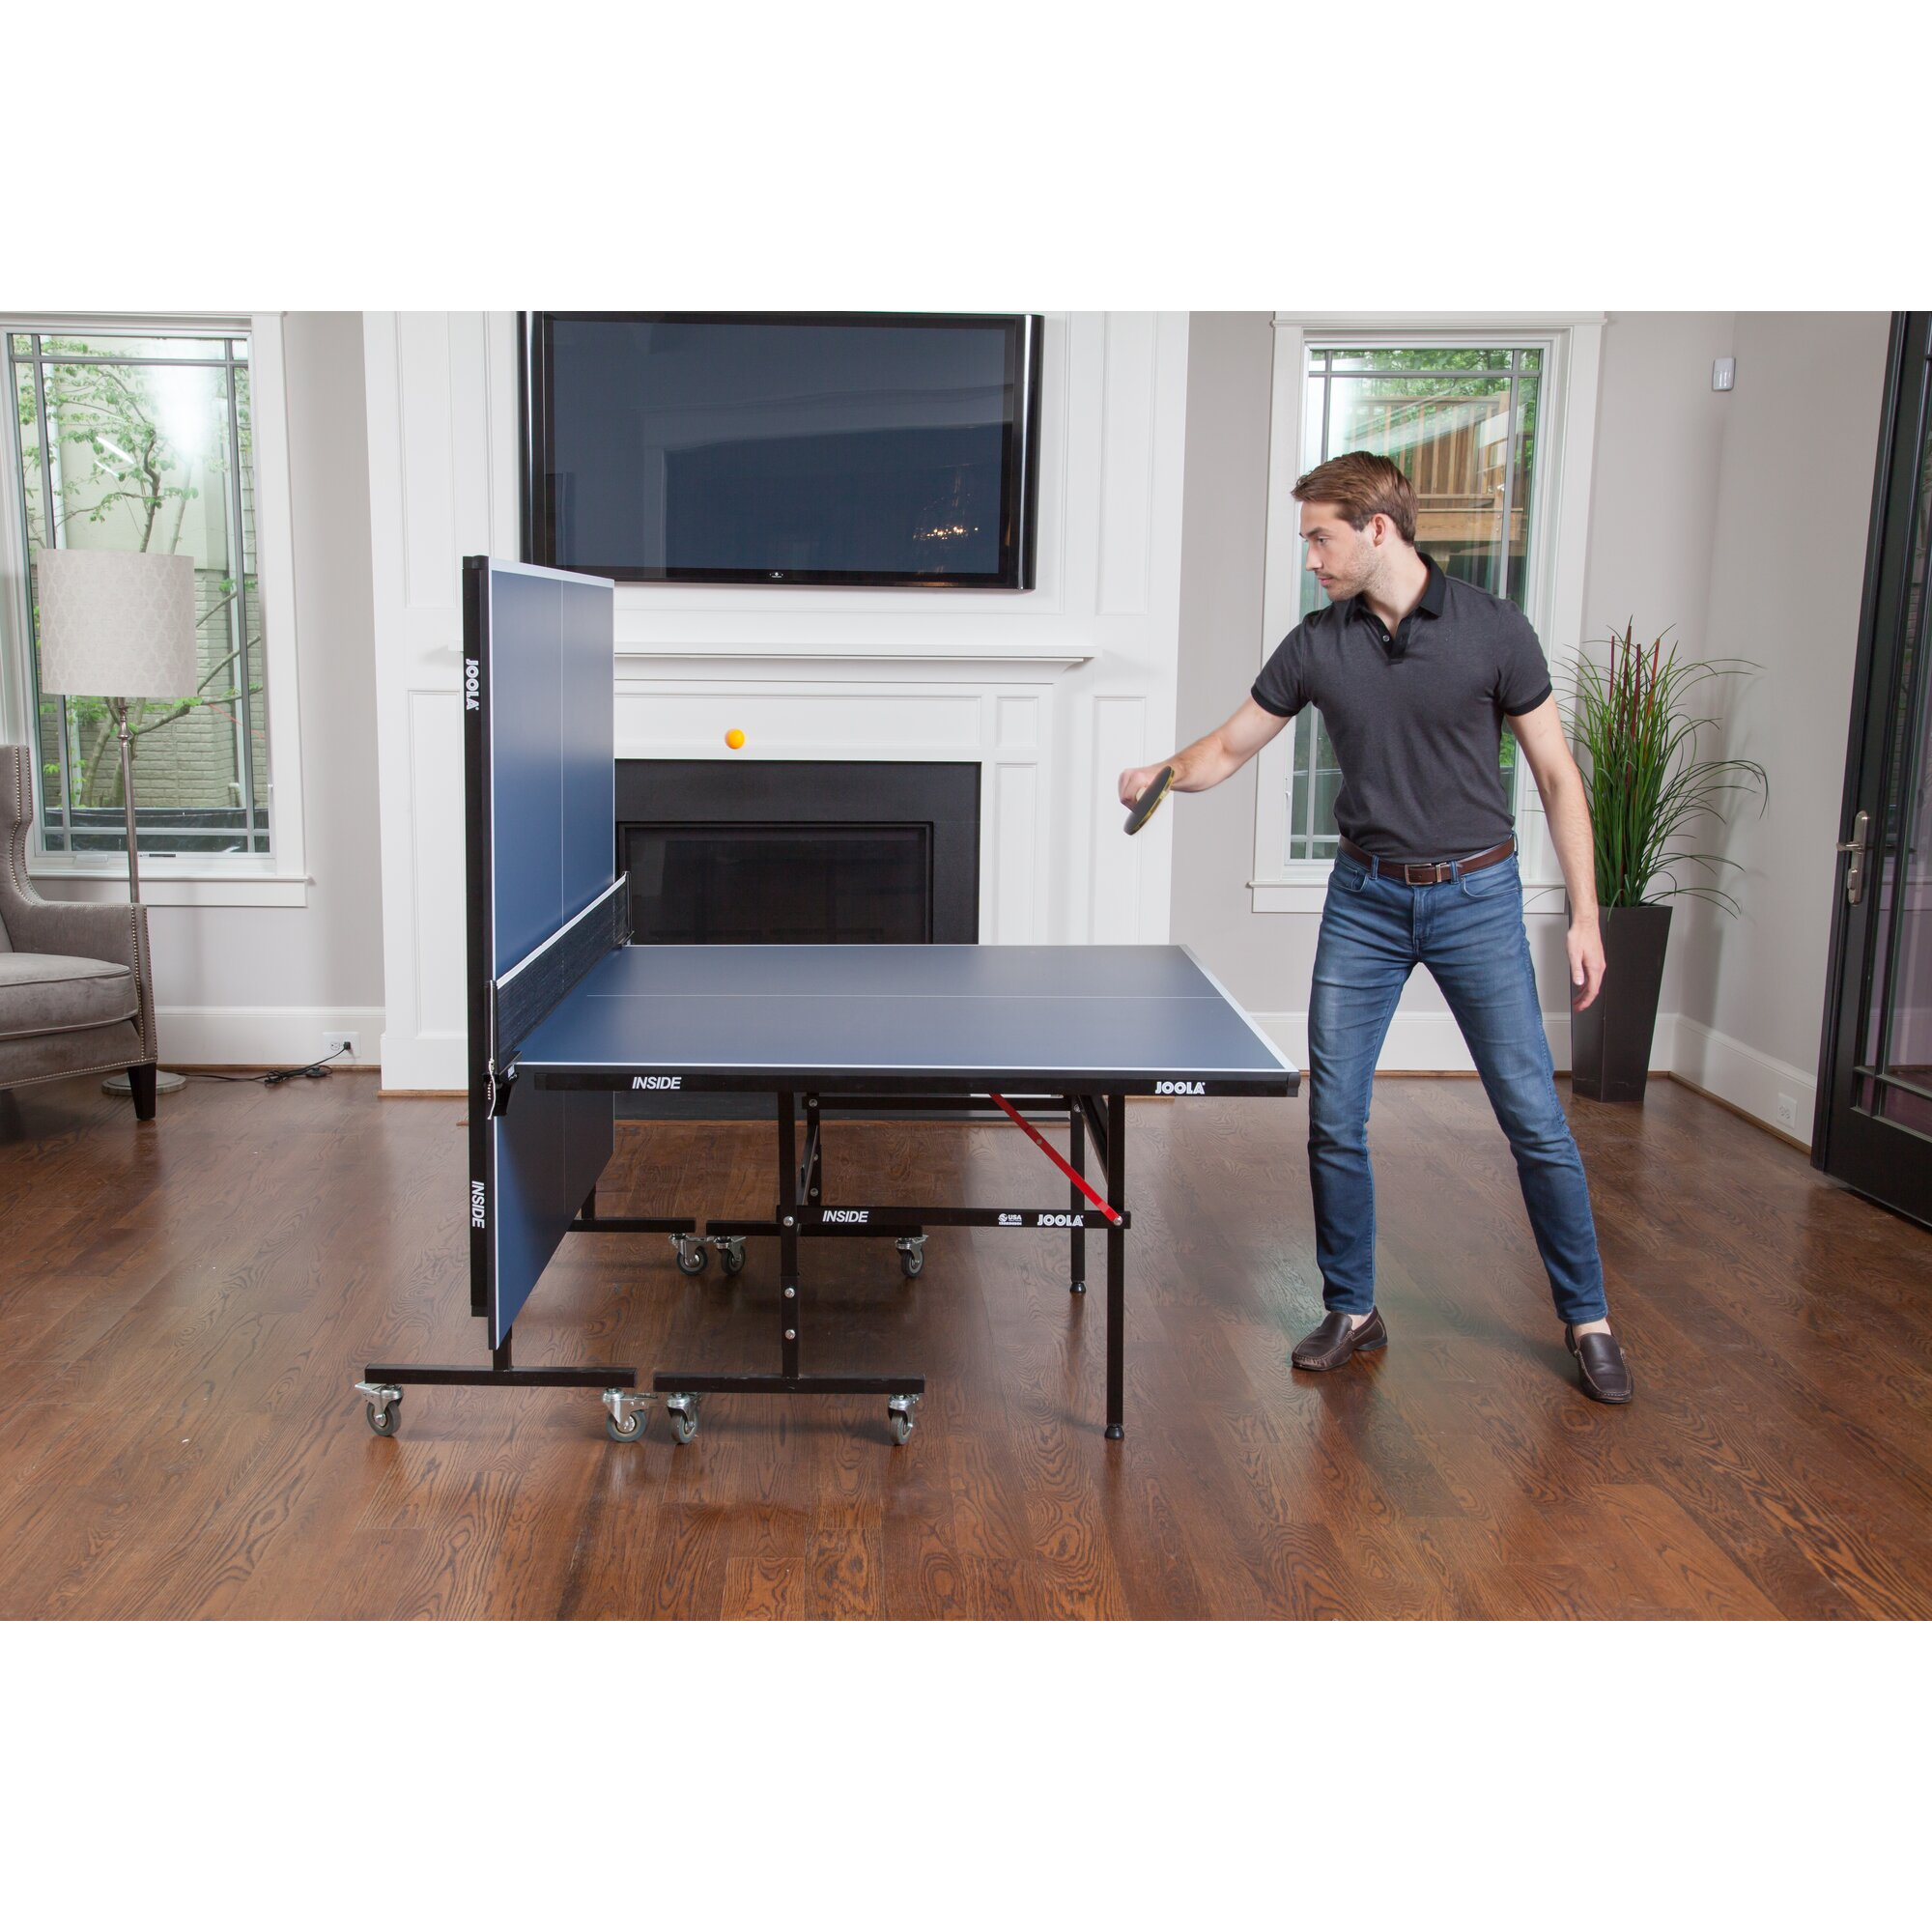 Joola Joola Inside 15 Table Tennis Table With Net Set